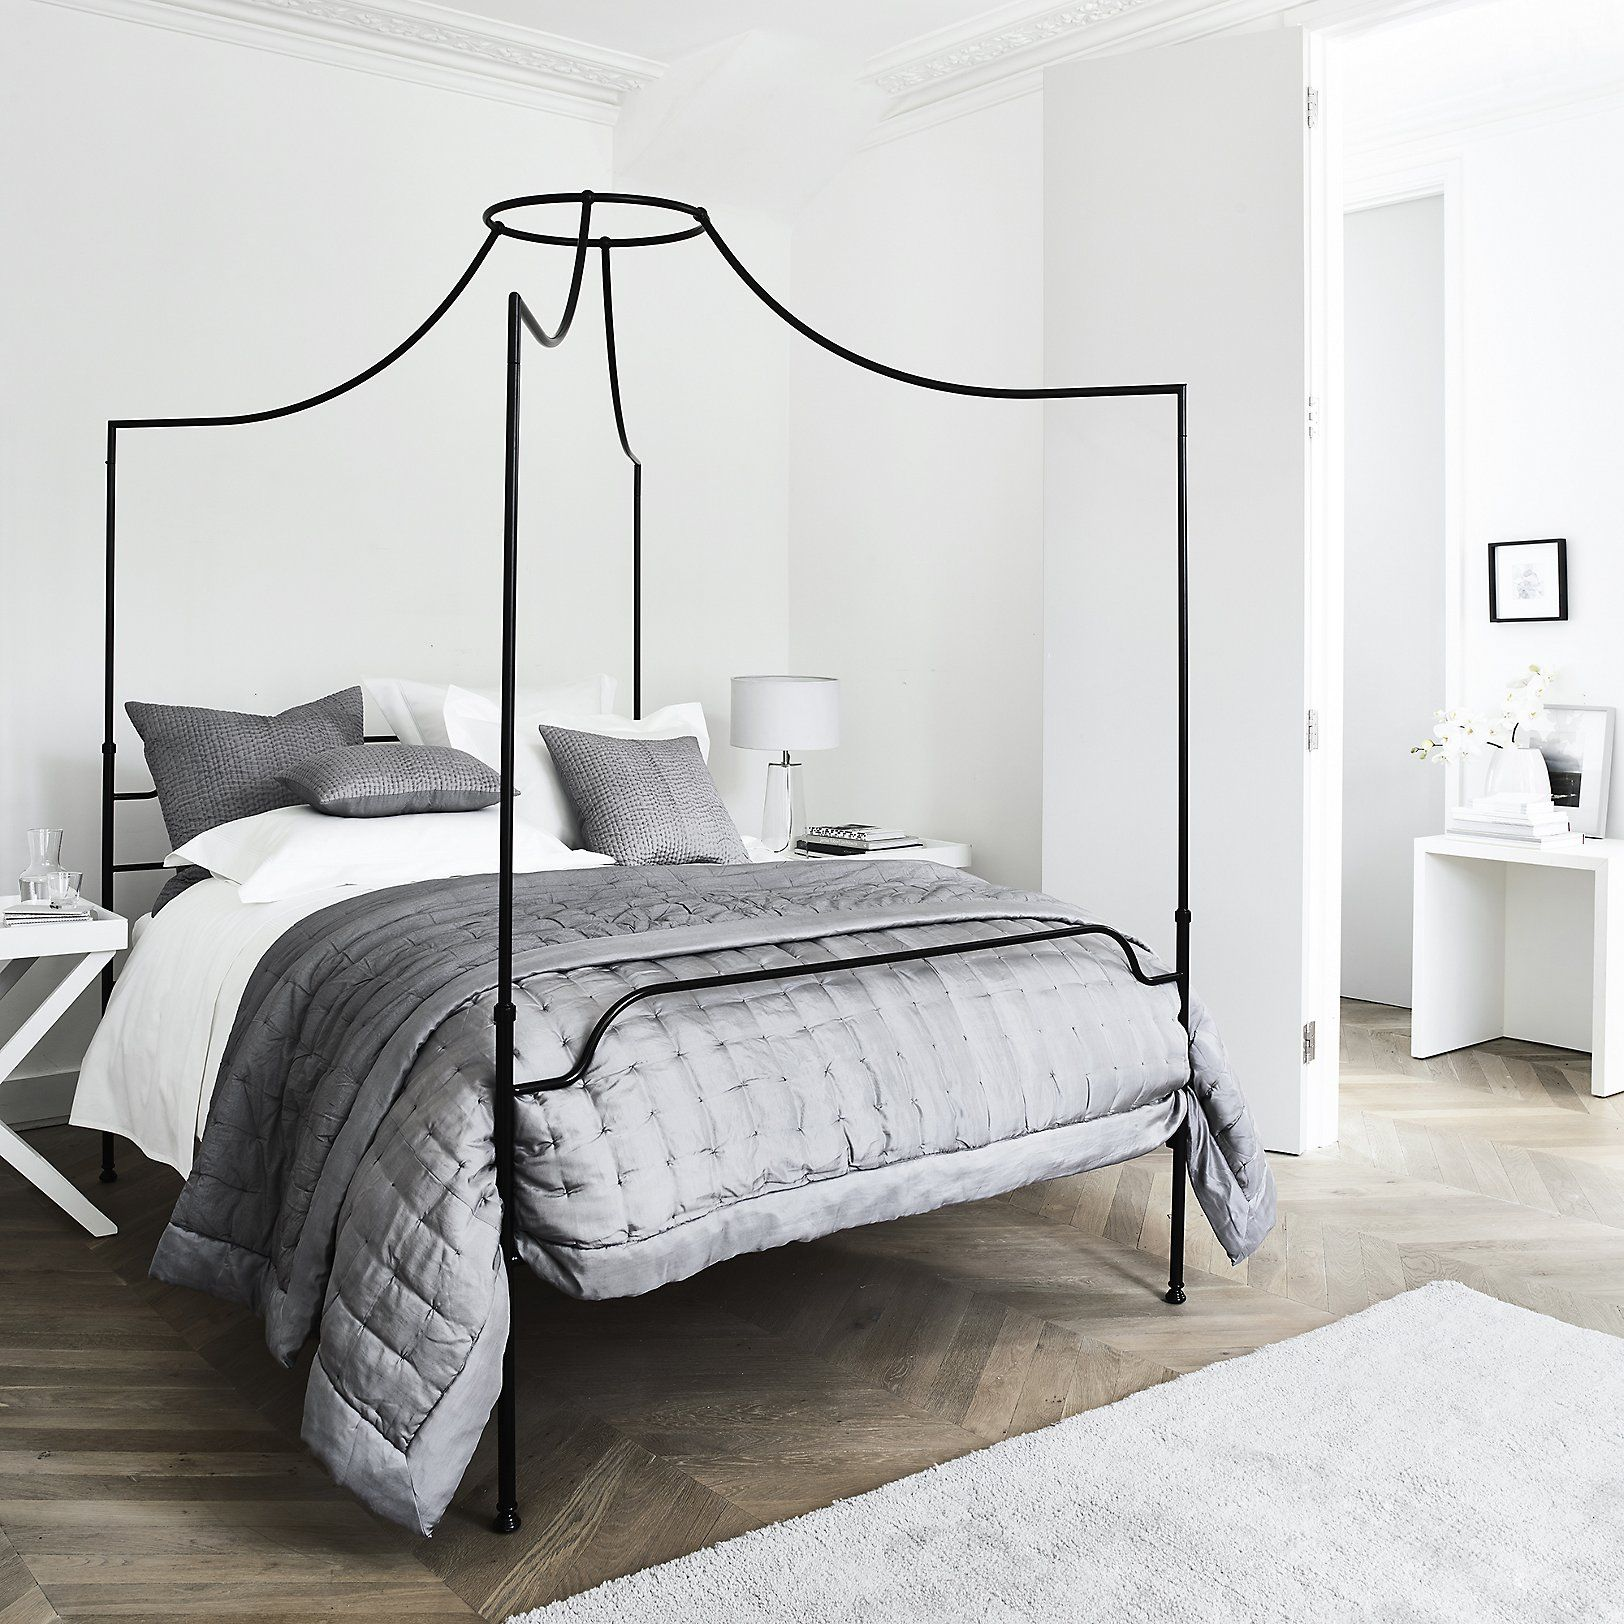 Beaumont Four Poster Bed Beds Furniture Home The White Company Uk Four Poster Bed Bedroom Redesign Canopy Bed Frame